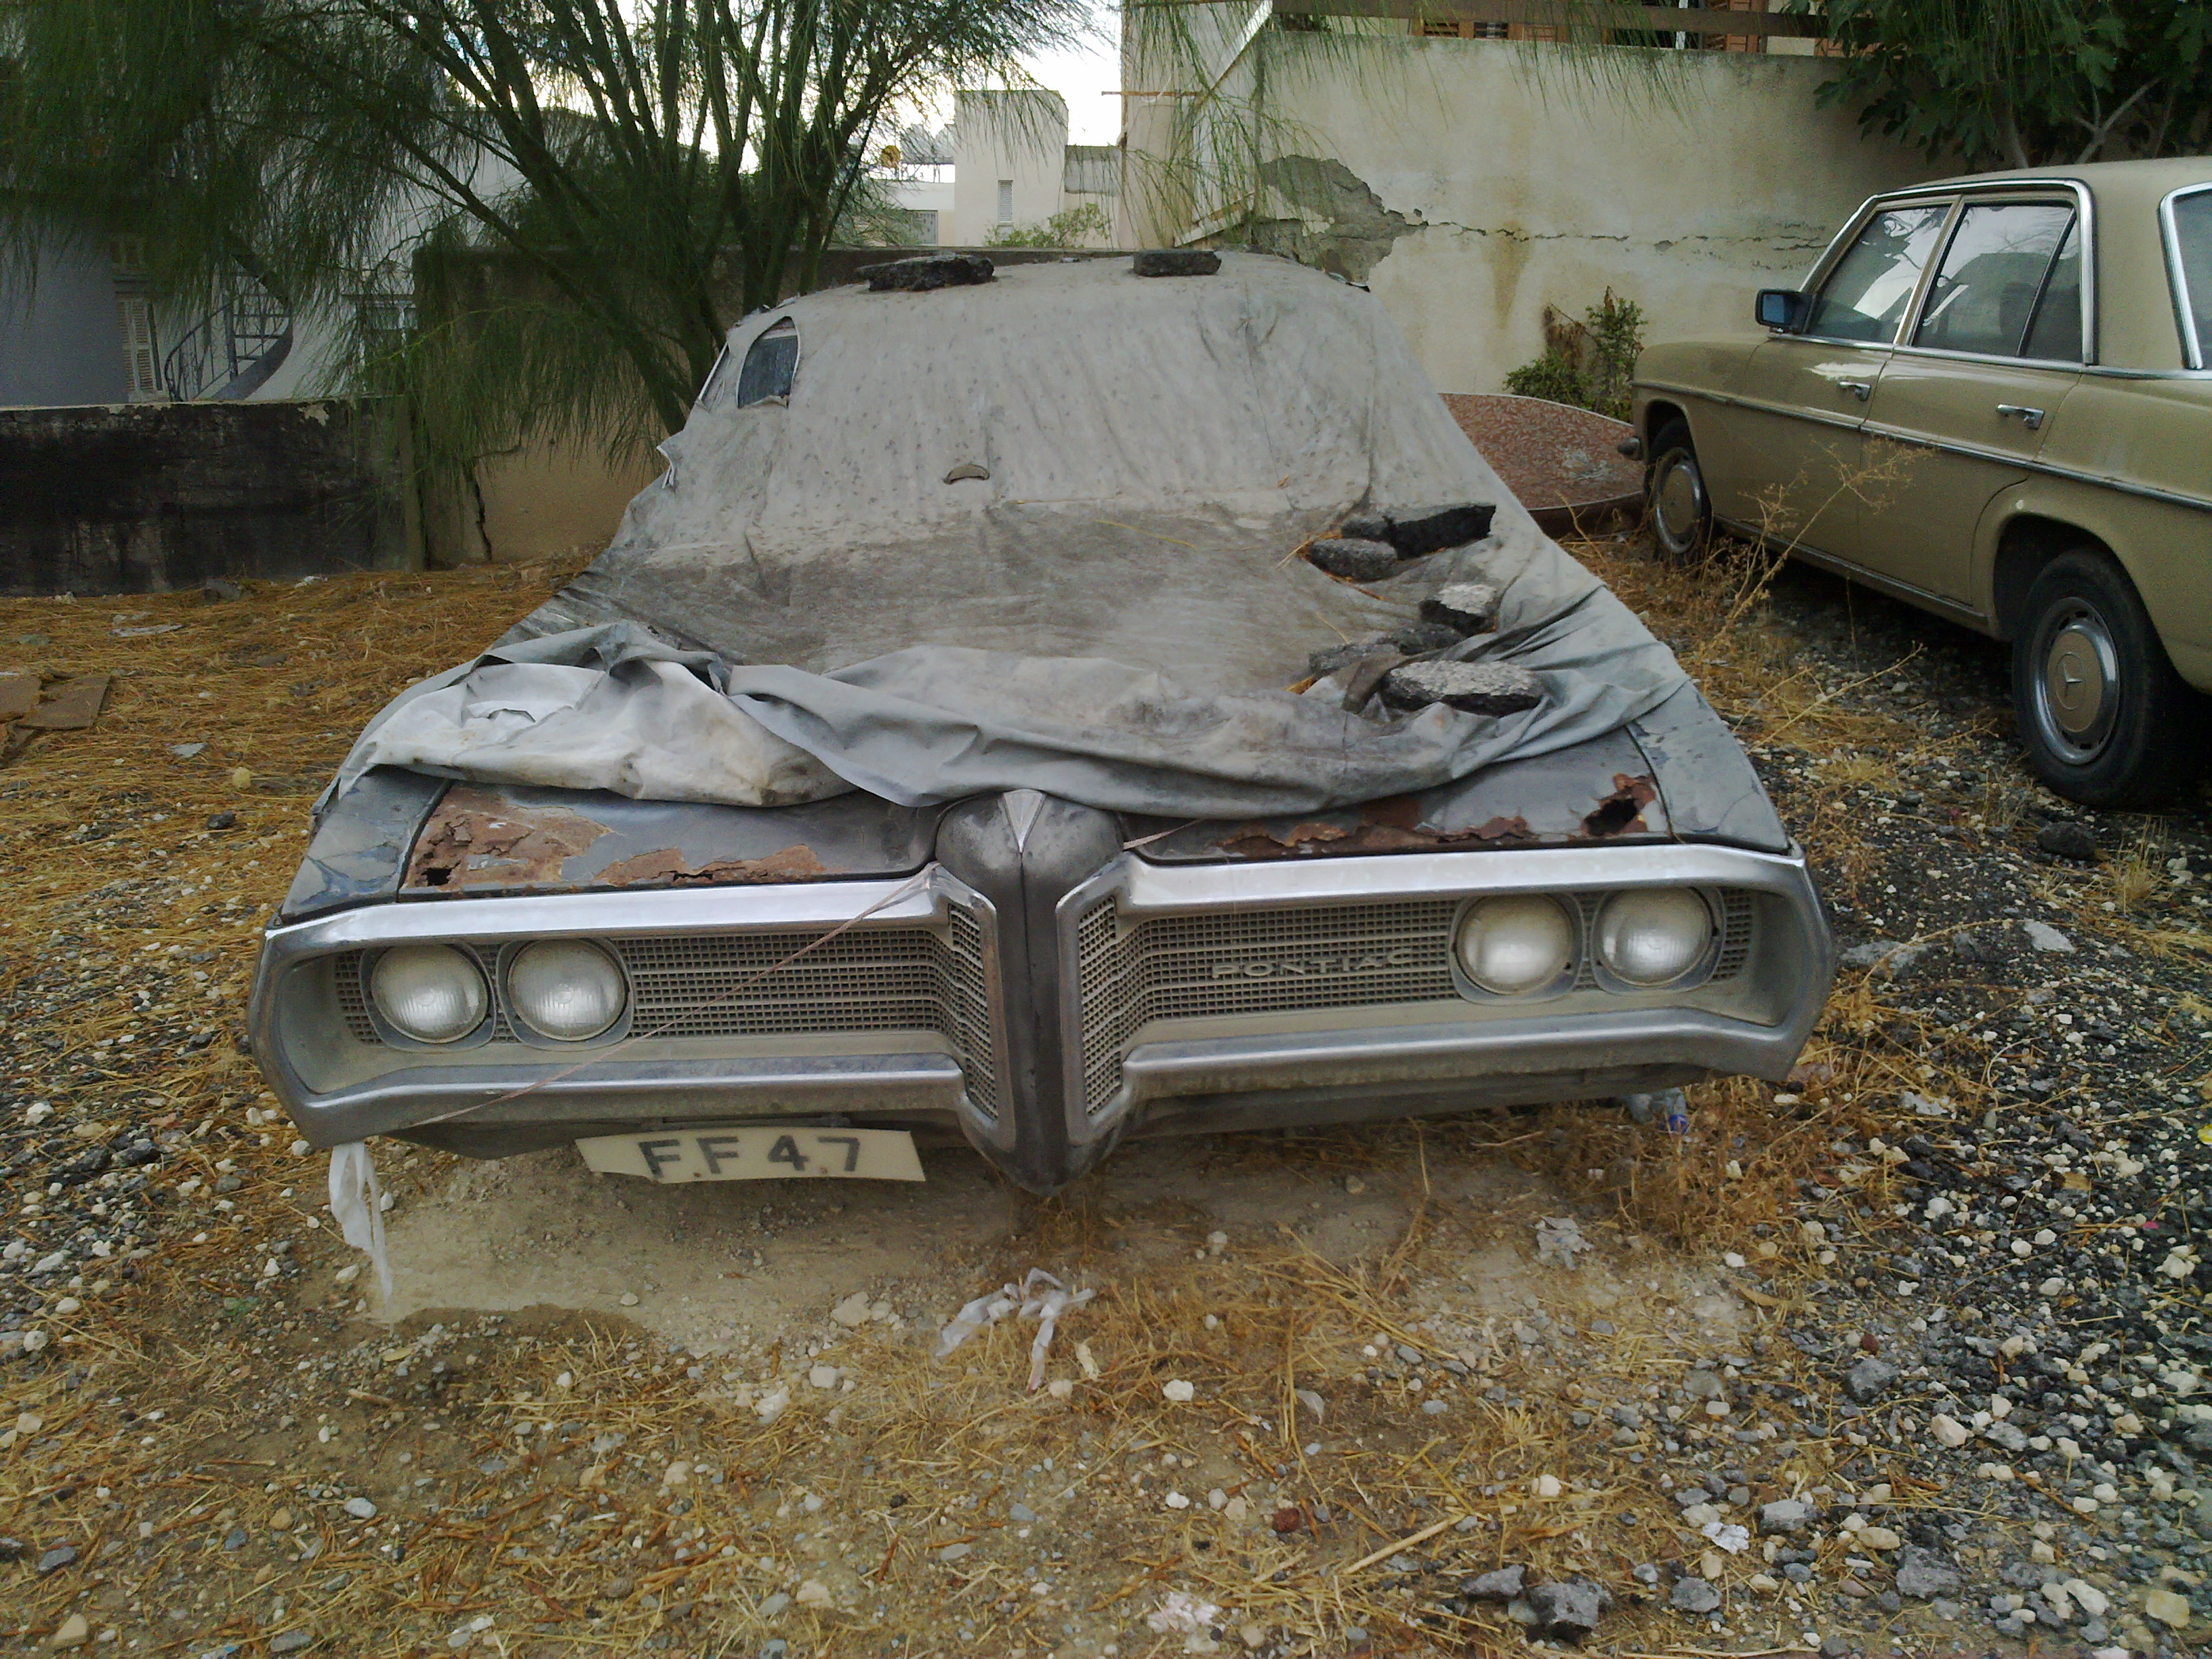 1969 Pontiac Parisienne Rotting Away In Cyprus Regularcarreviews 1967 Gto Fuse Box